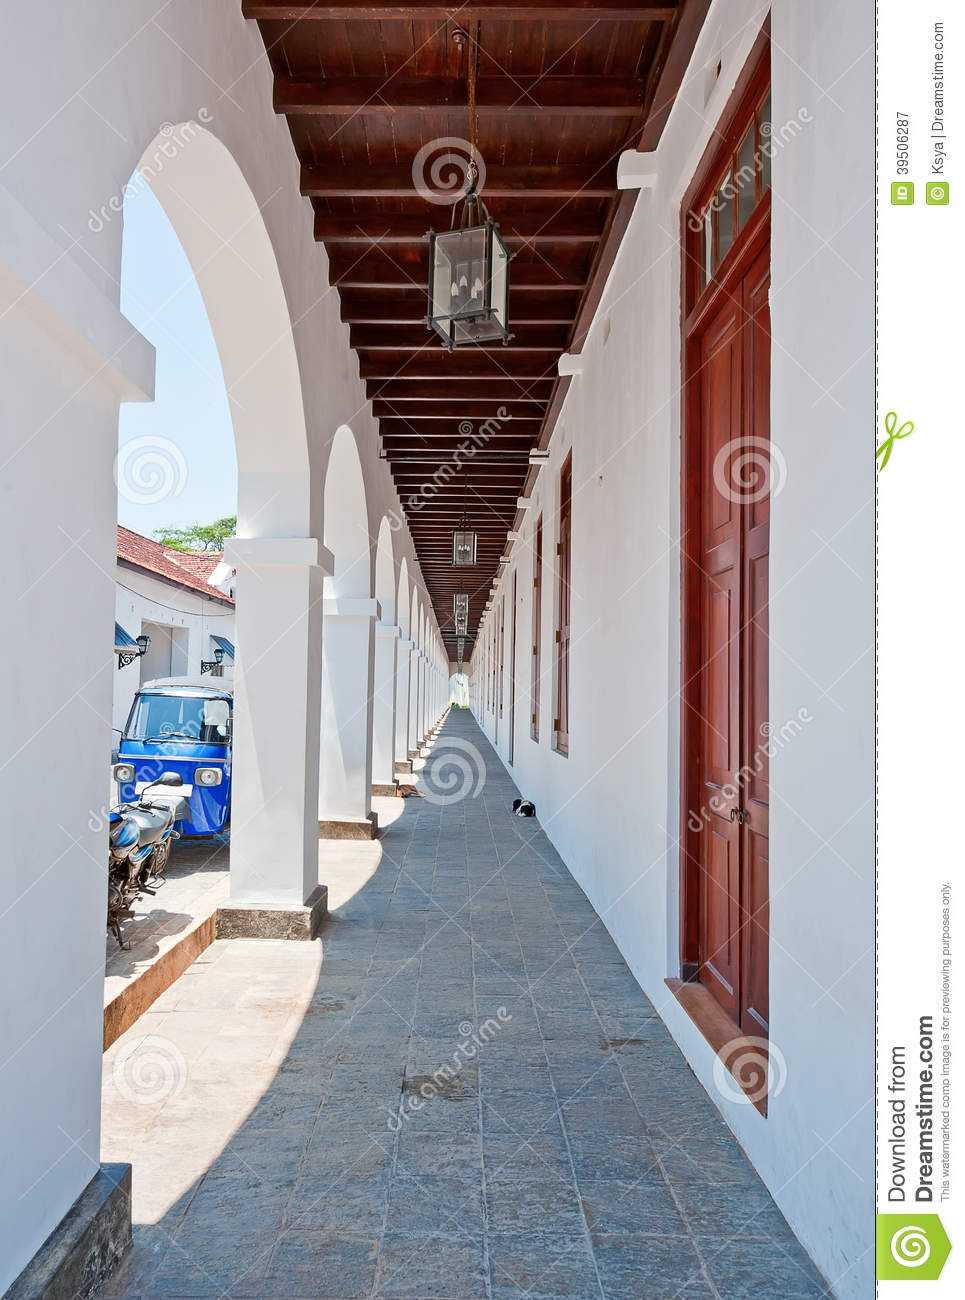 The colonnaded archway in Galle, Sri Lanka